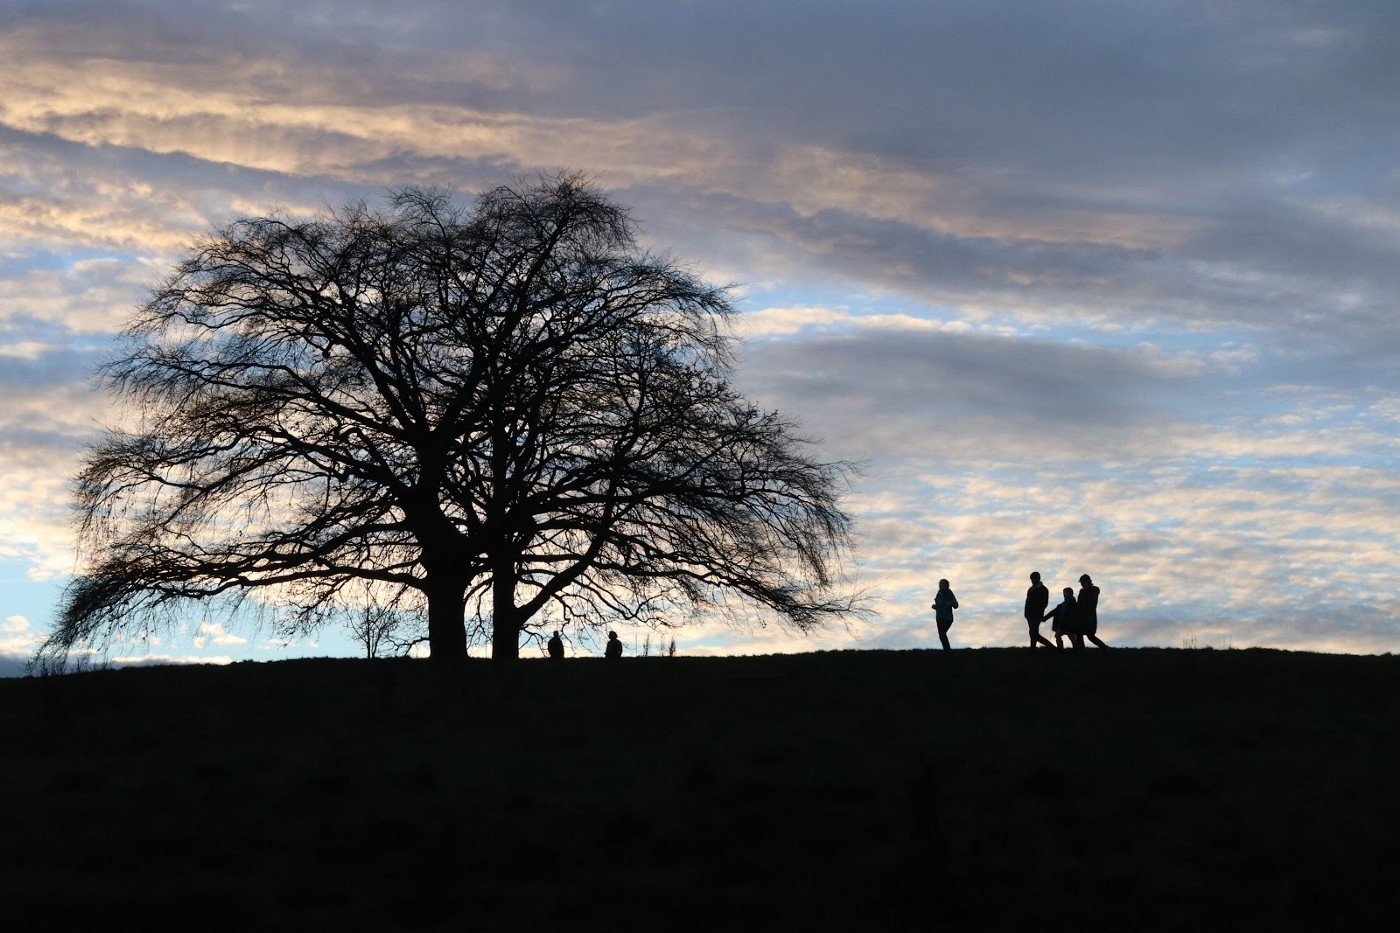 Photo at near sunset. Tree siloutetted. People as shadows standing near.